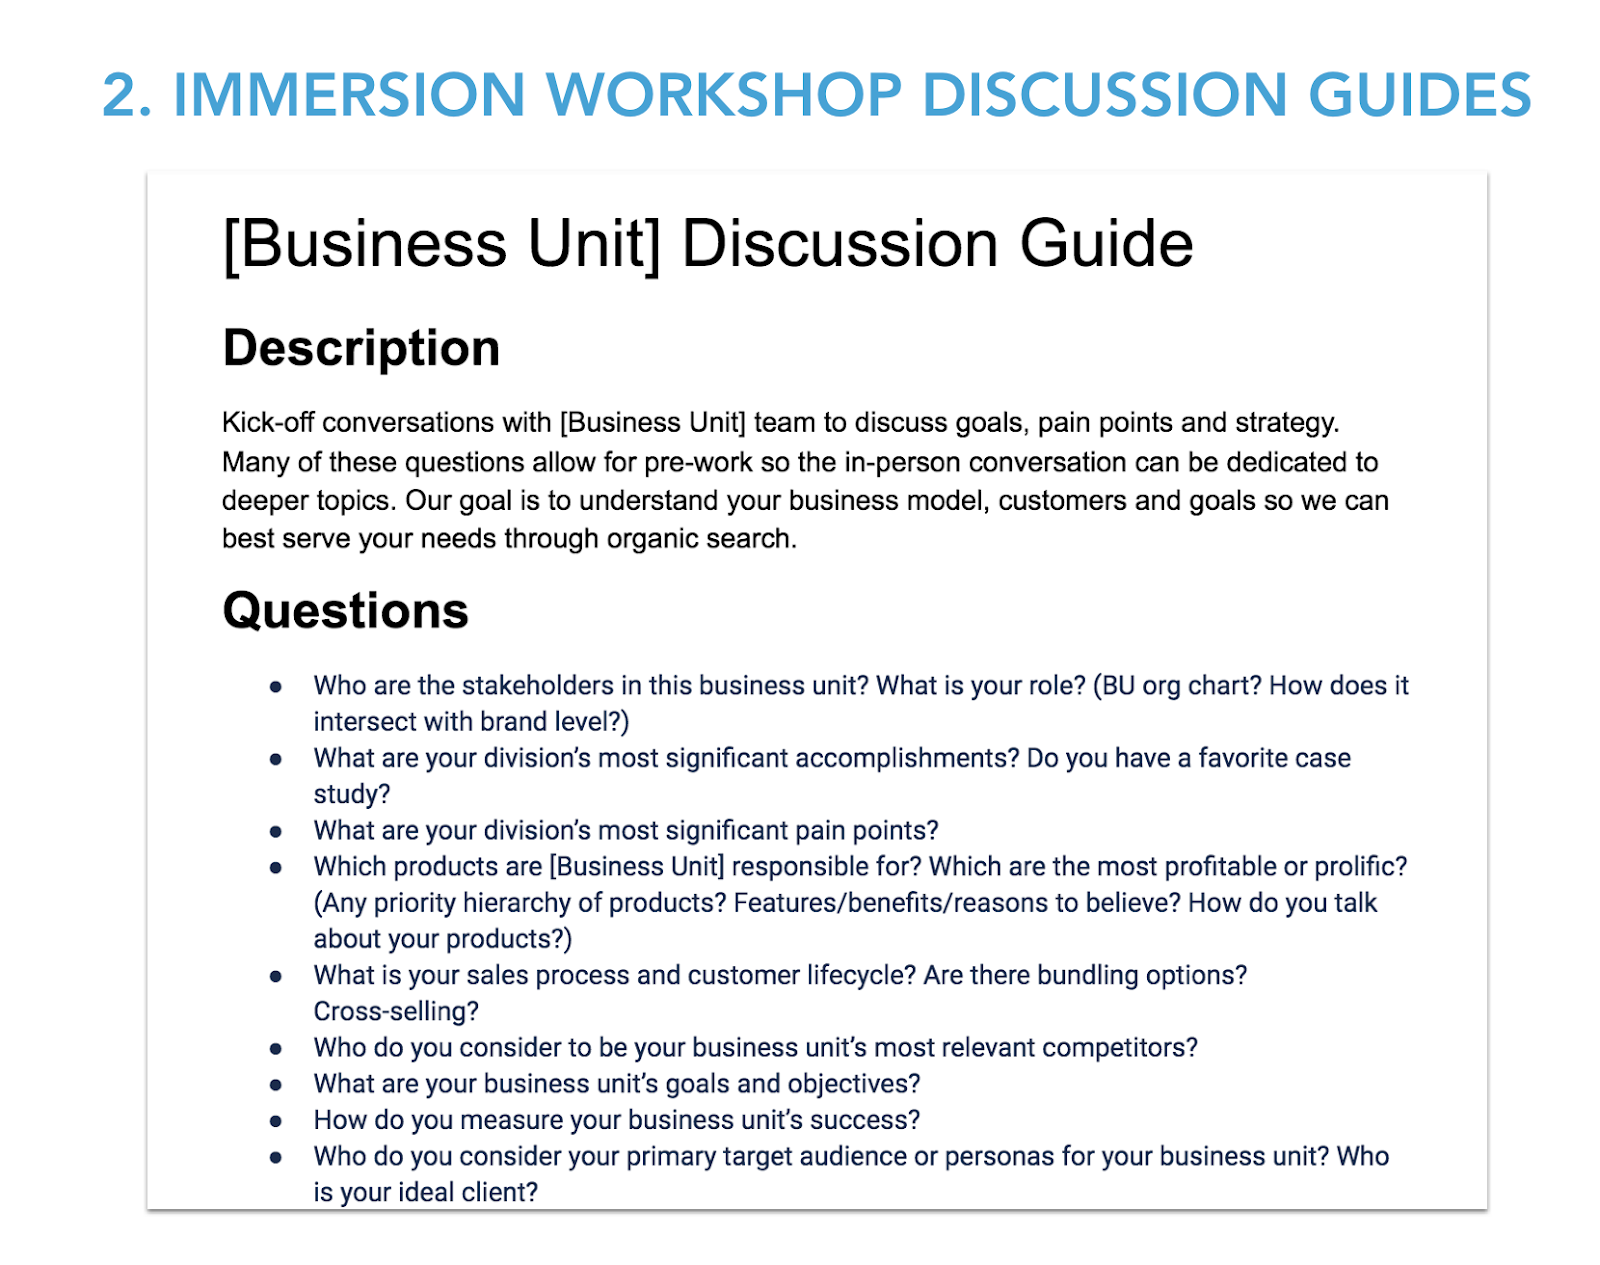 Immersion workshop discussion guide